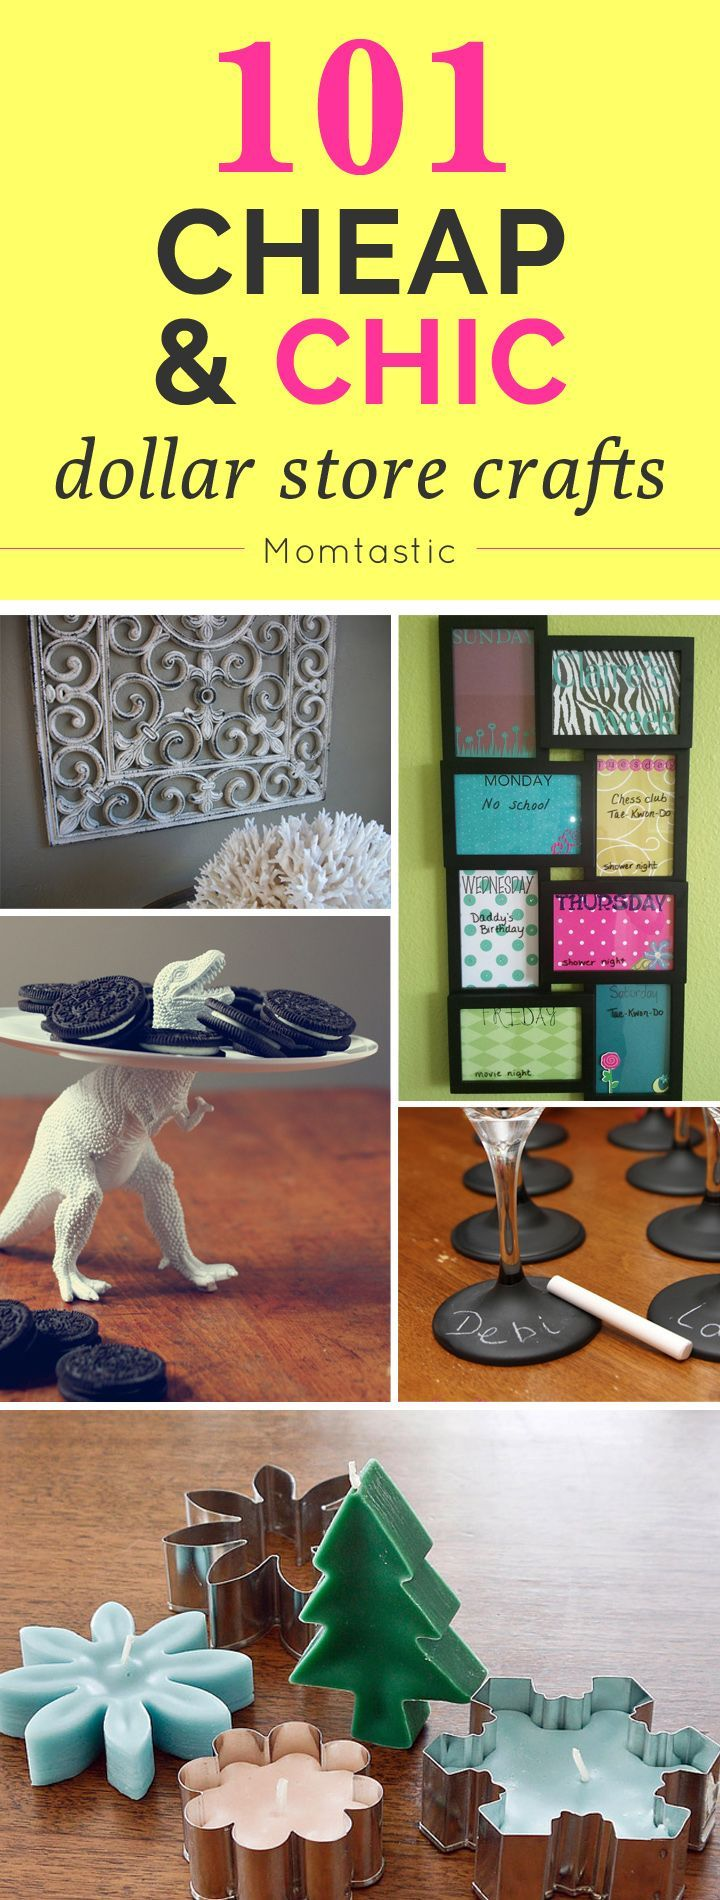 Love the idea of these cheap, chic, DIY crafts.